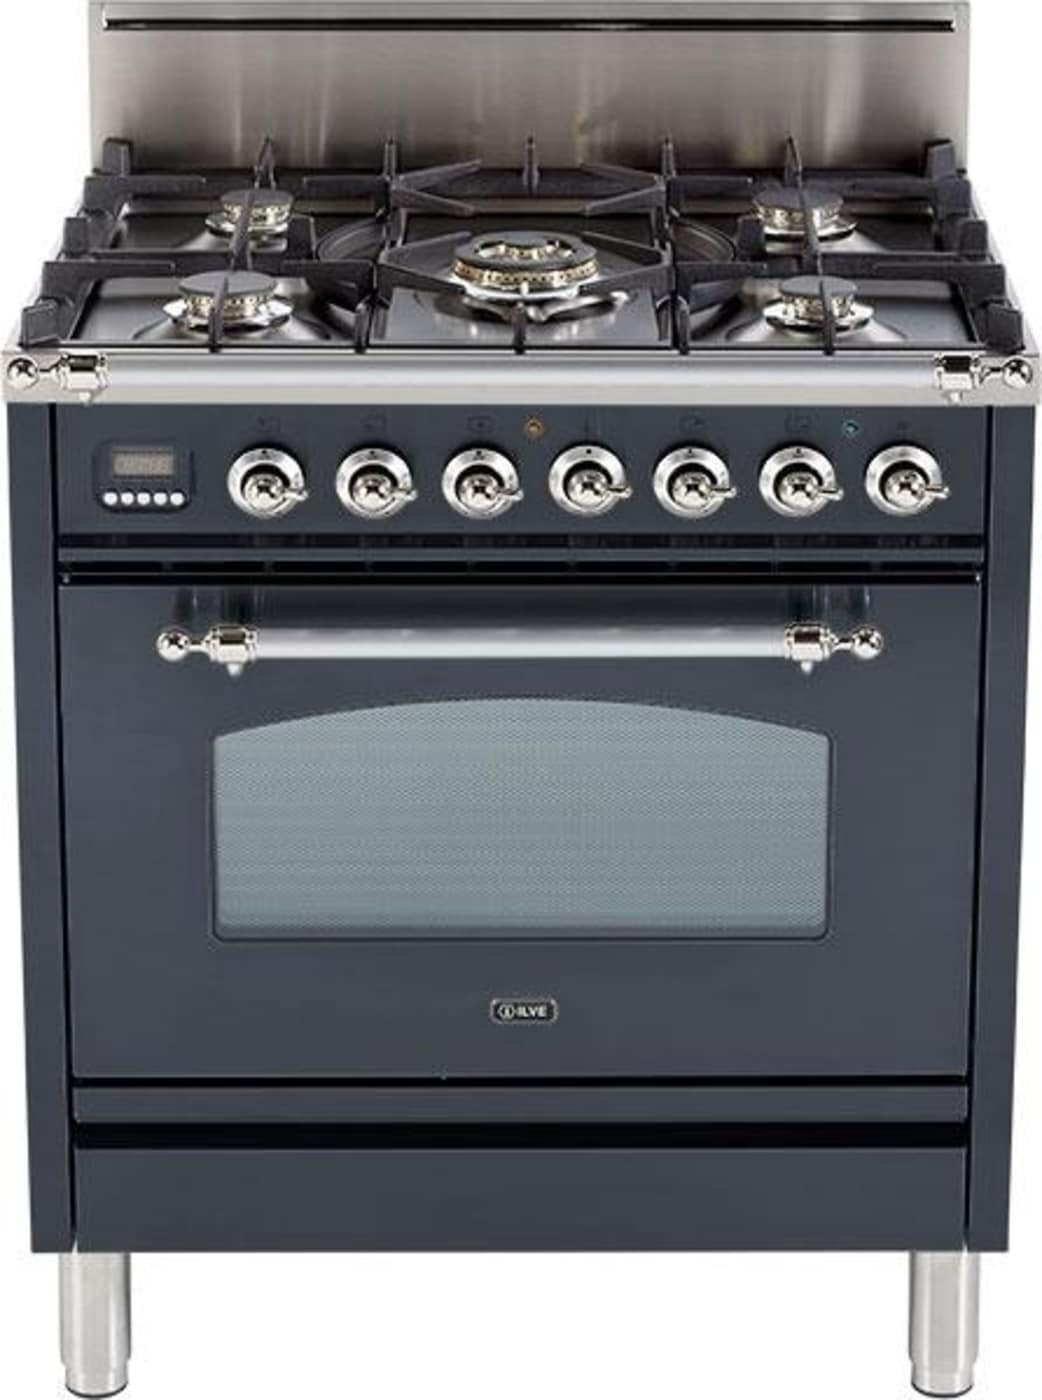 UPN76DVGGMY-NG by Ilve - Natural Gas Ranges | Goedekers.com